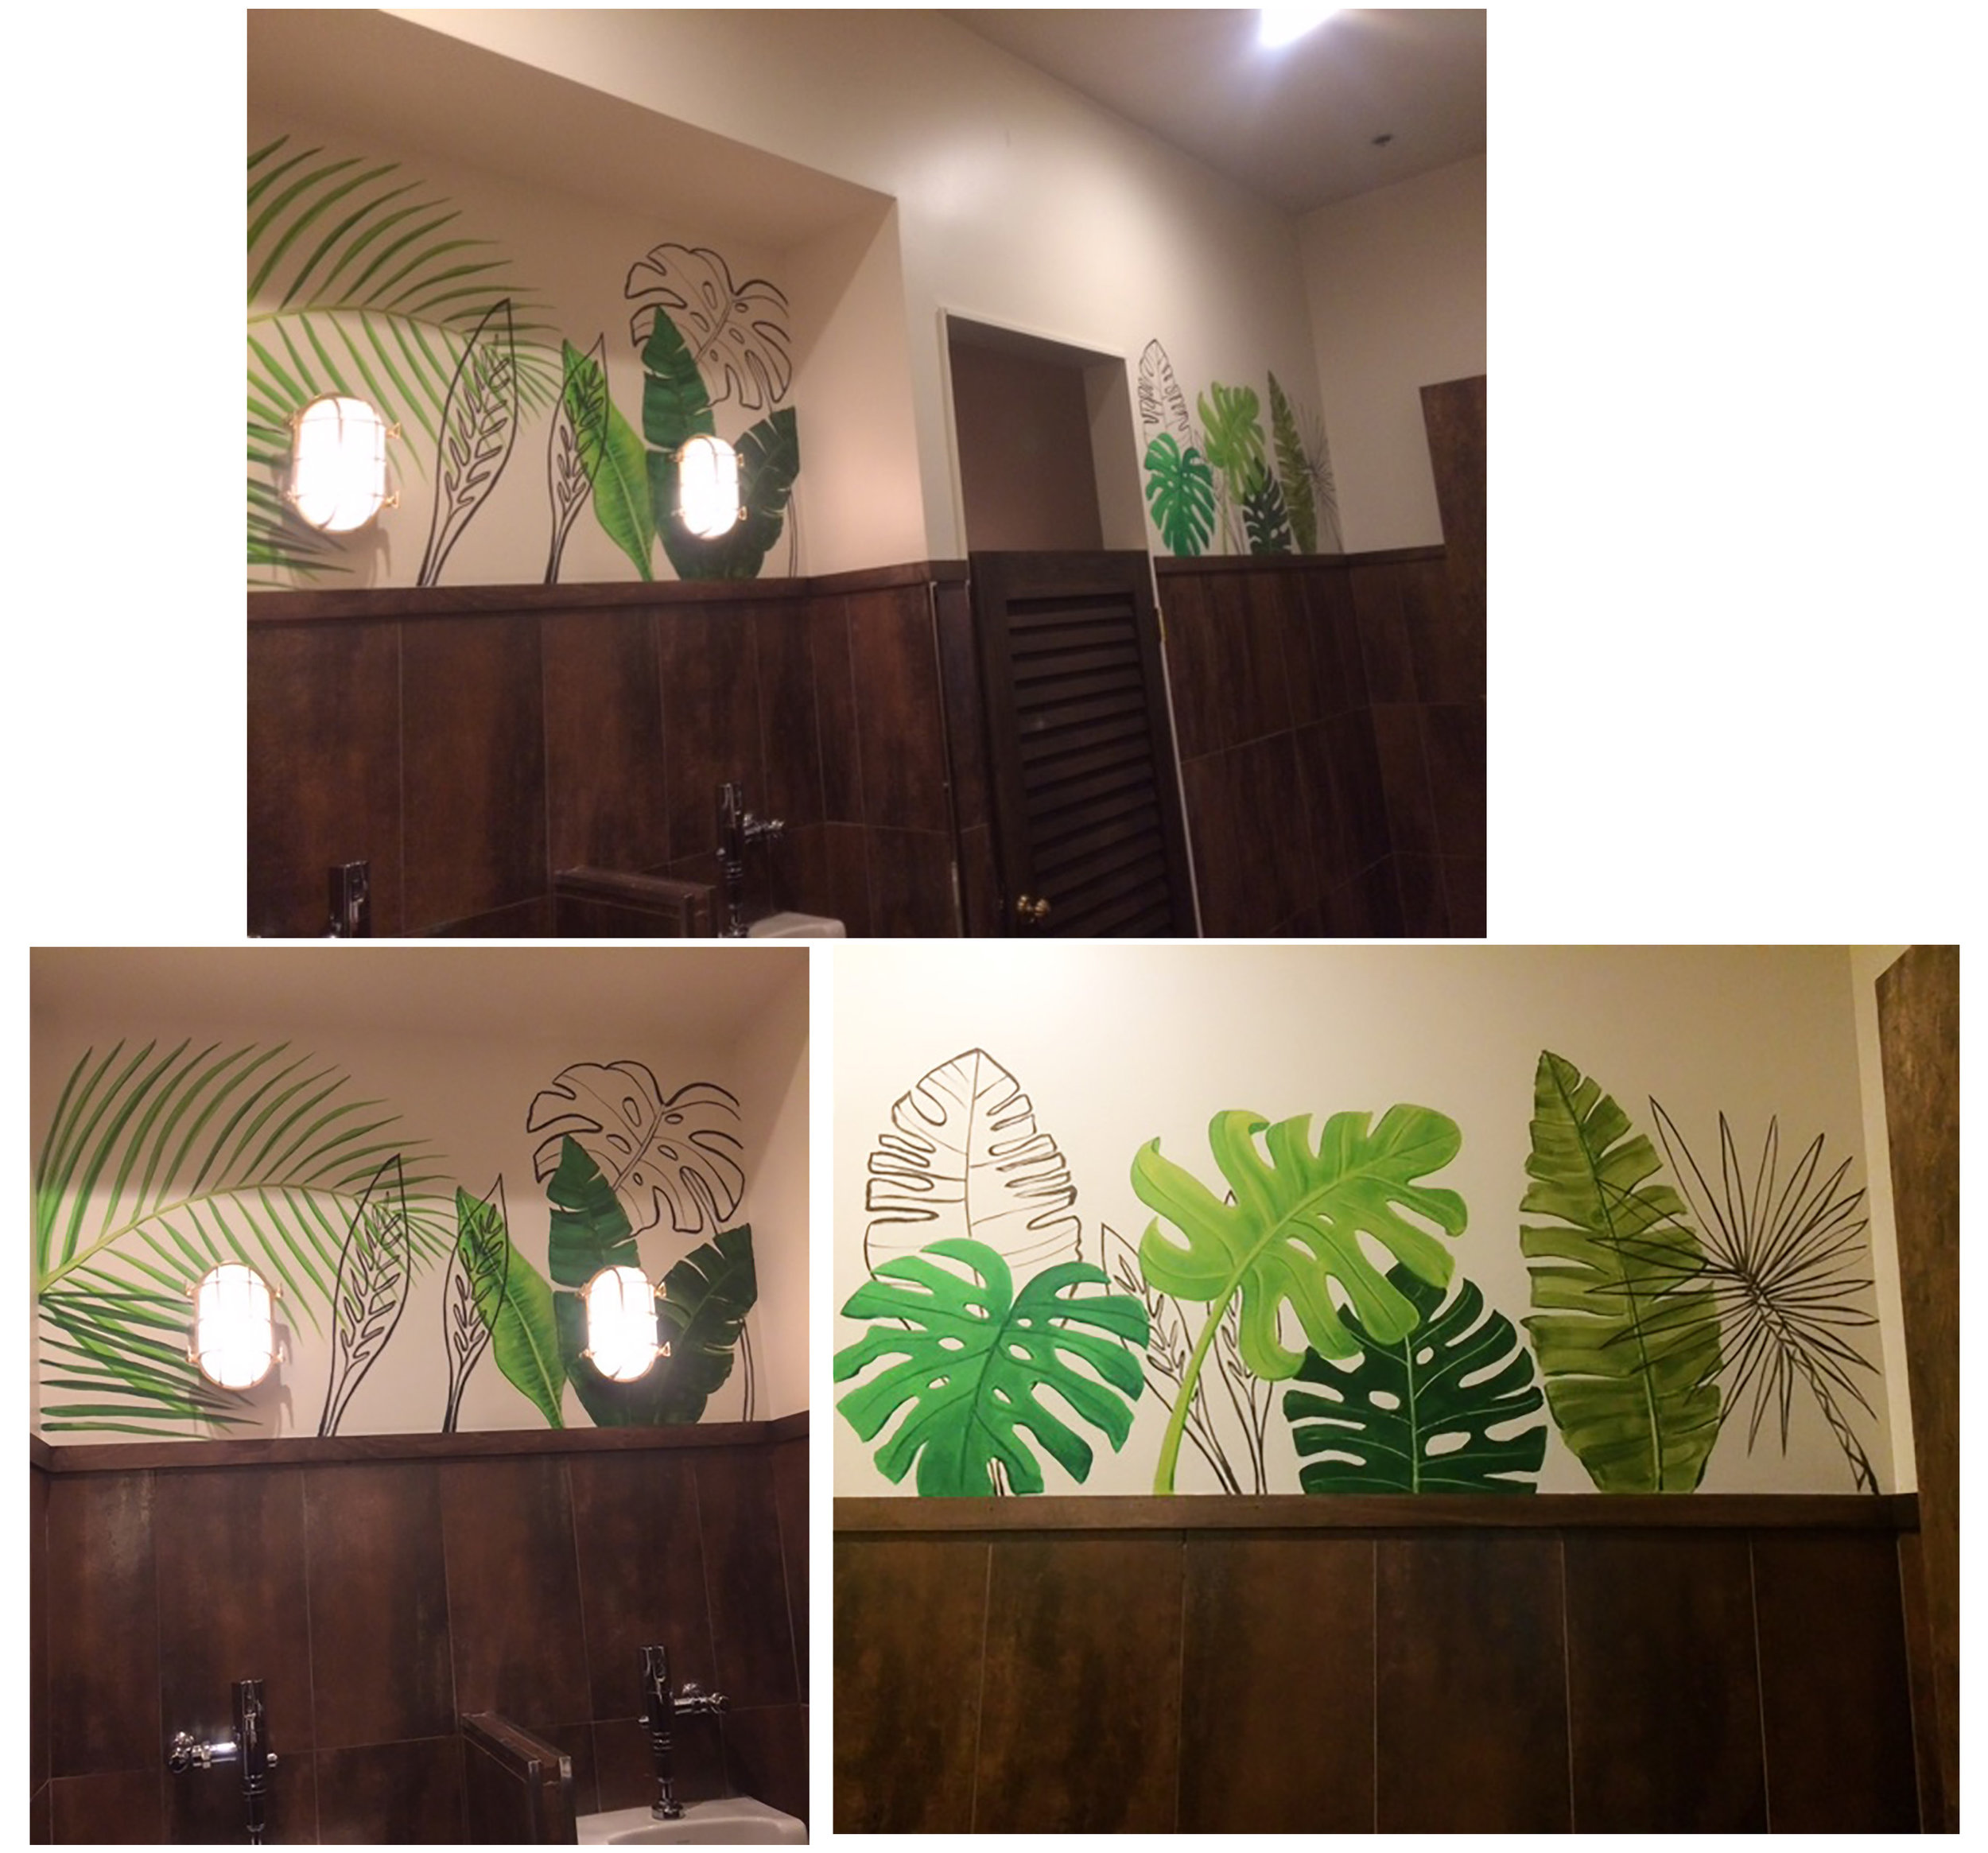 The final mural segments for the men's room.